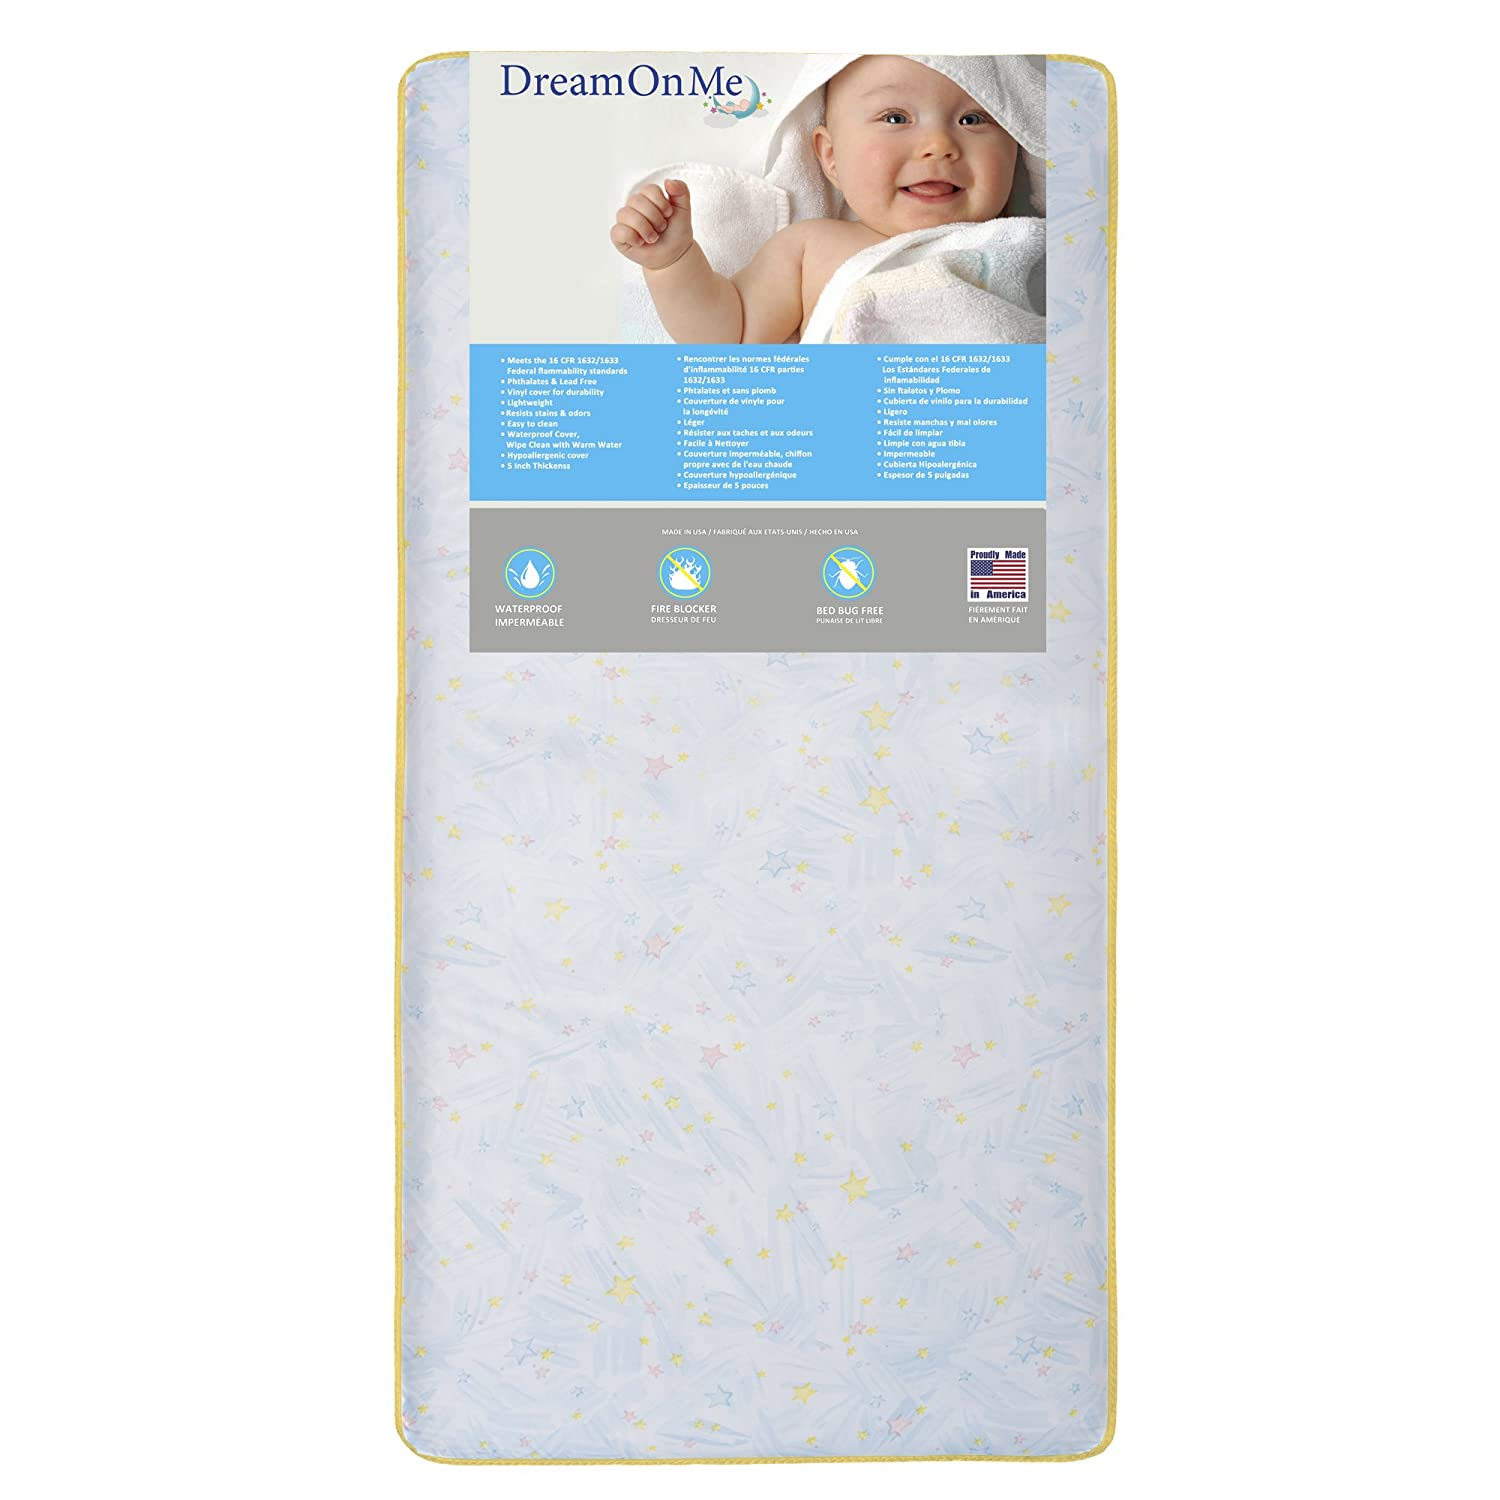 Dream On Me Crib and Toddler, 202 Coil Mattress, Star Light 154-202